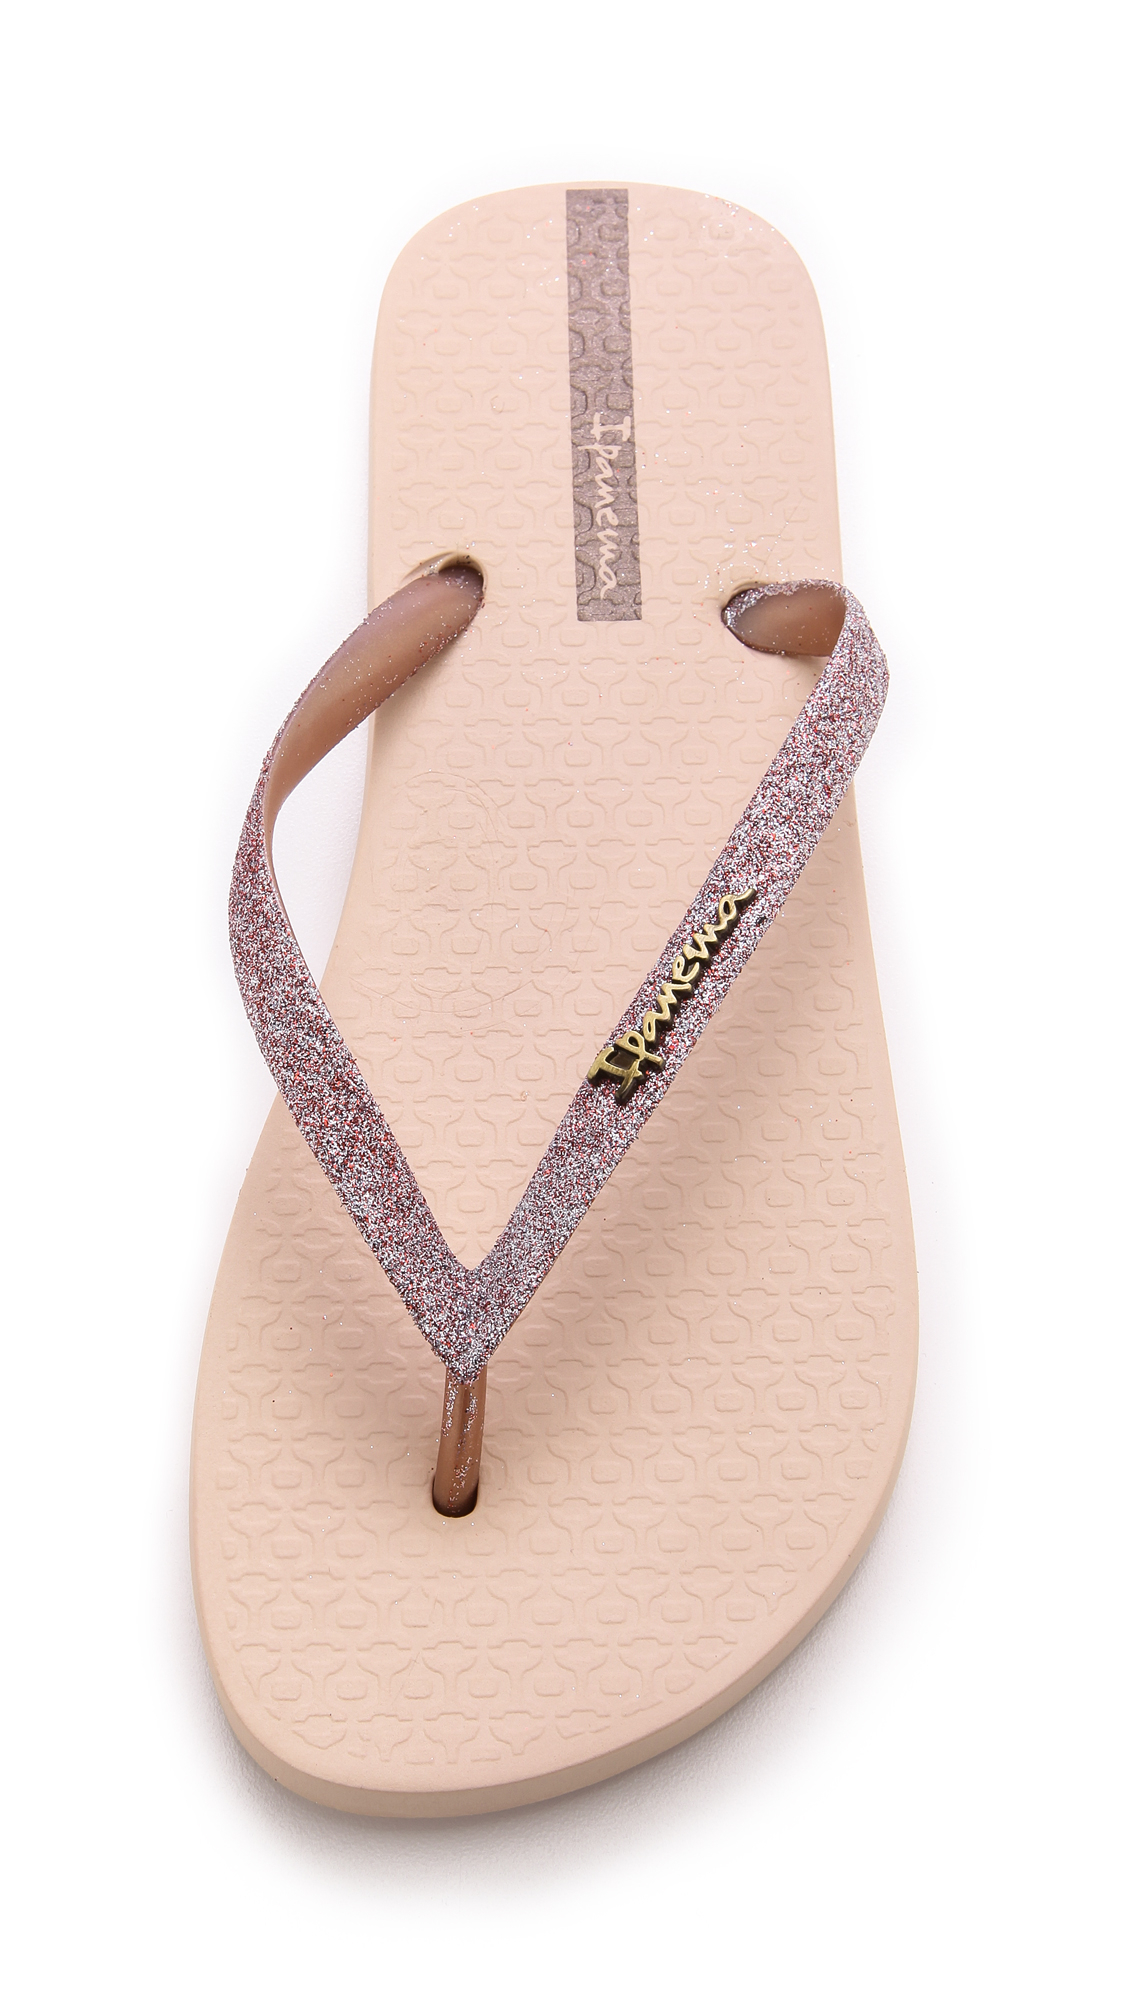 381a98acdcb Ipanema Glitter Ii Flip Flops - Silver in Pink - Lyst